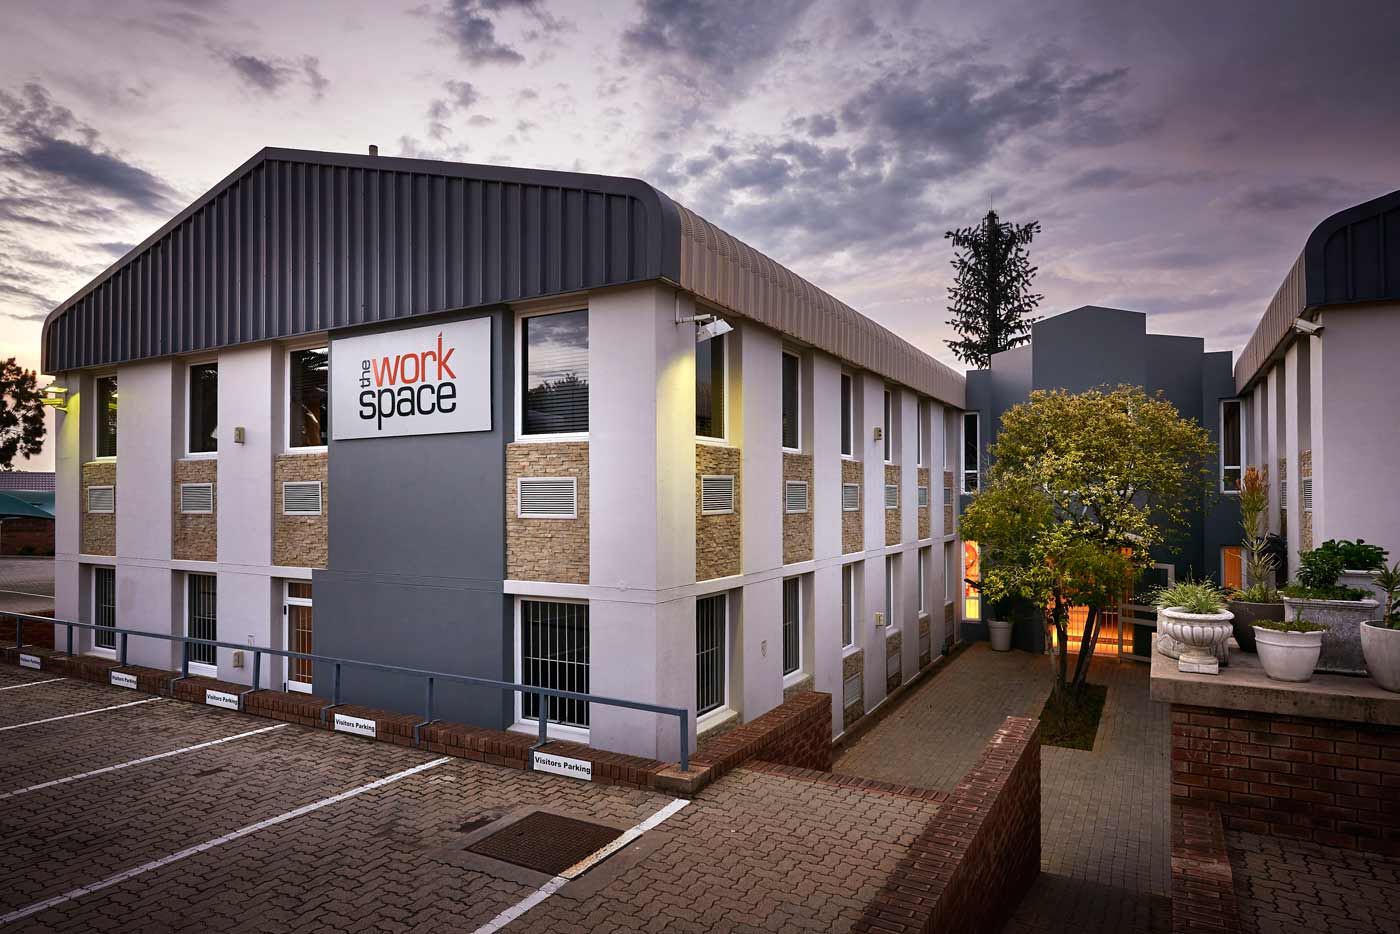 Office space to rent in midrand - The Workspace Midrand